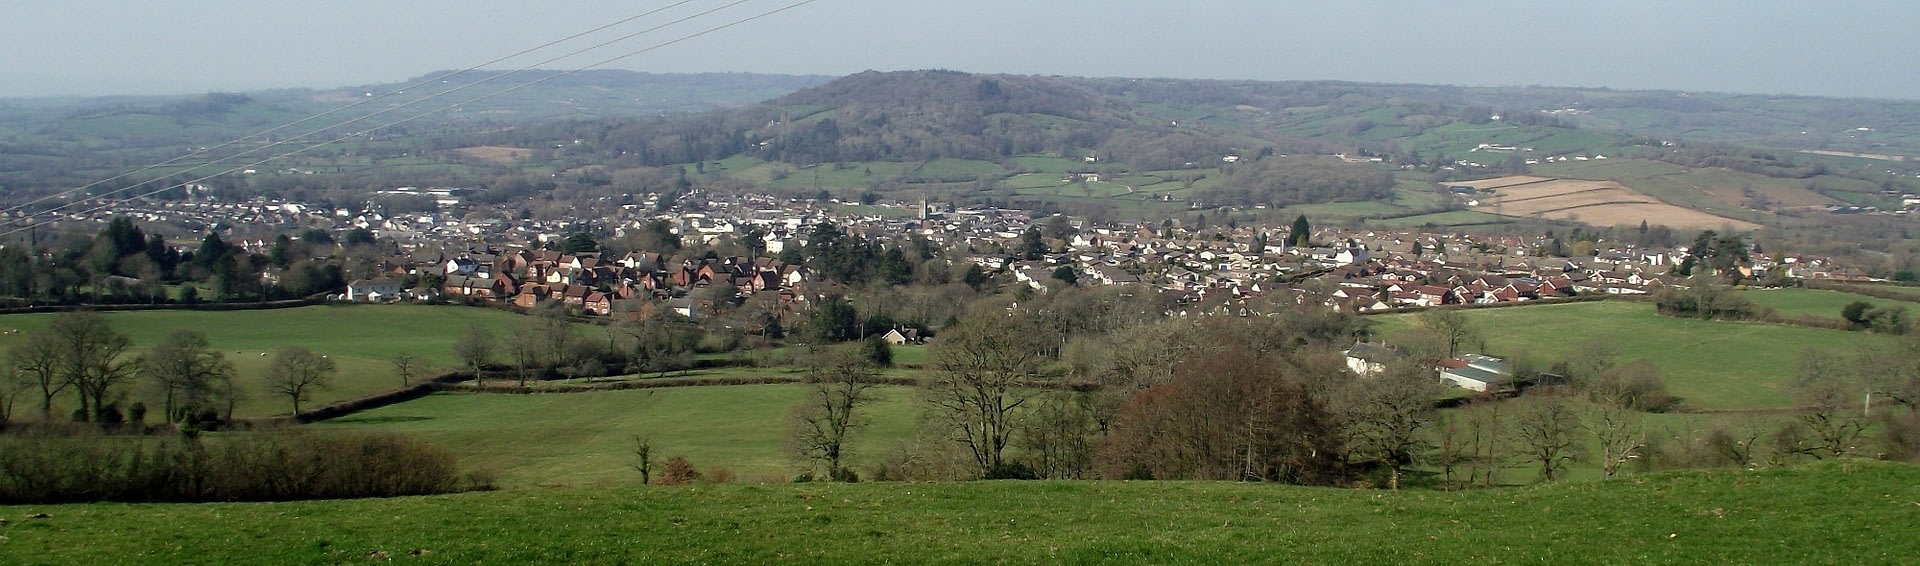 Hotels in Honiton